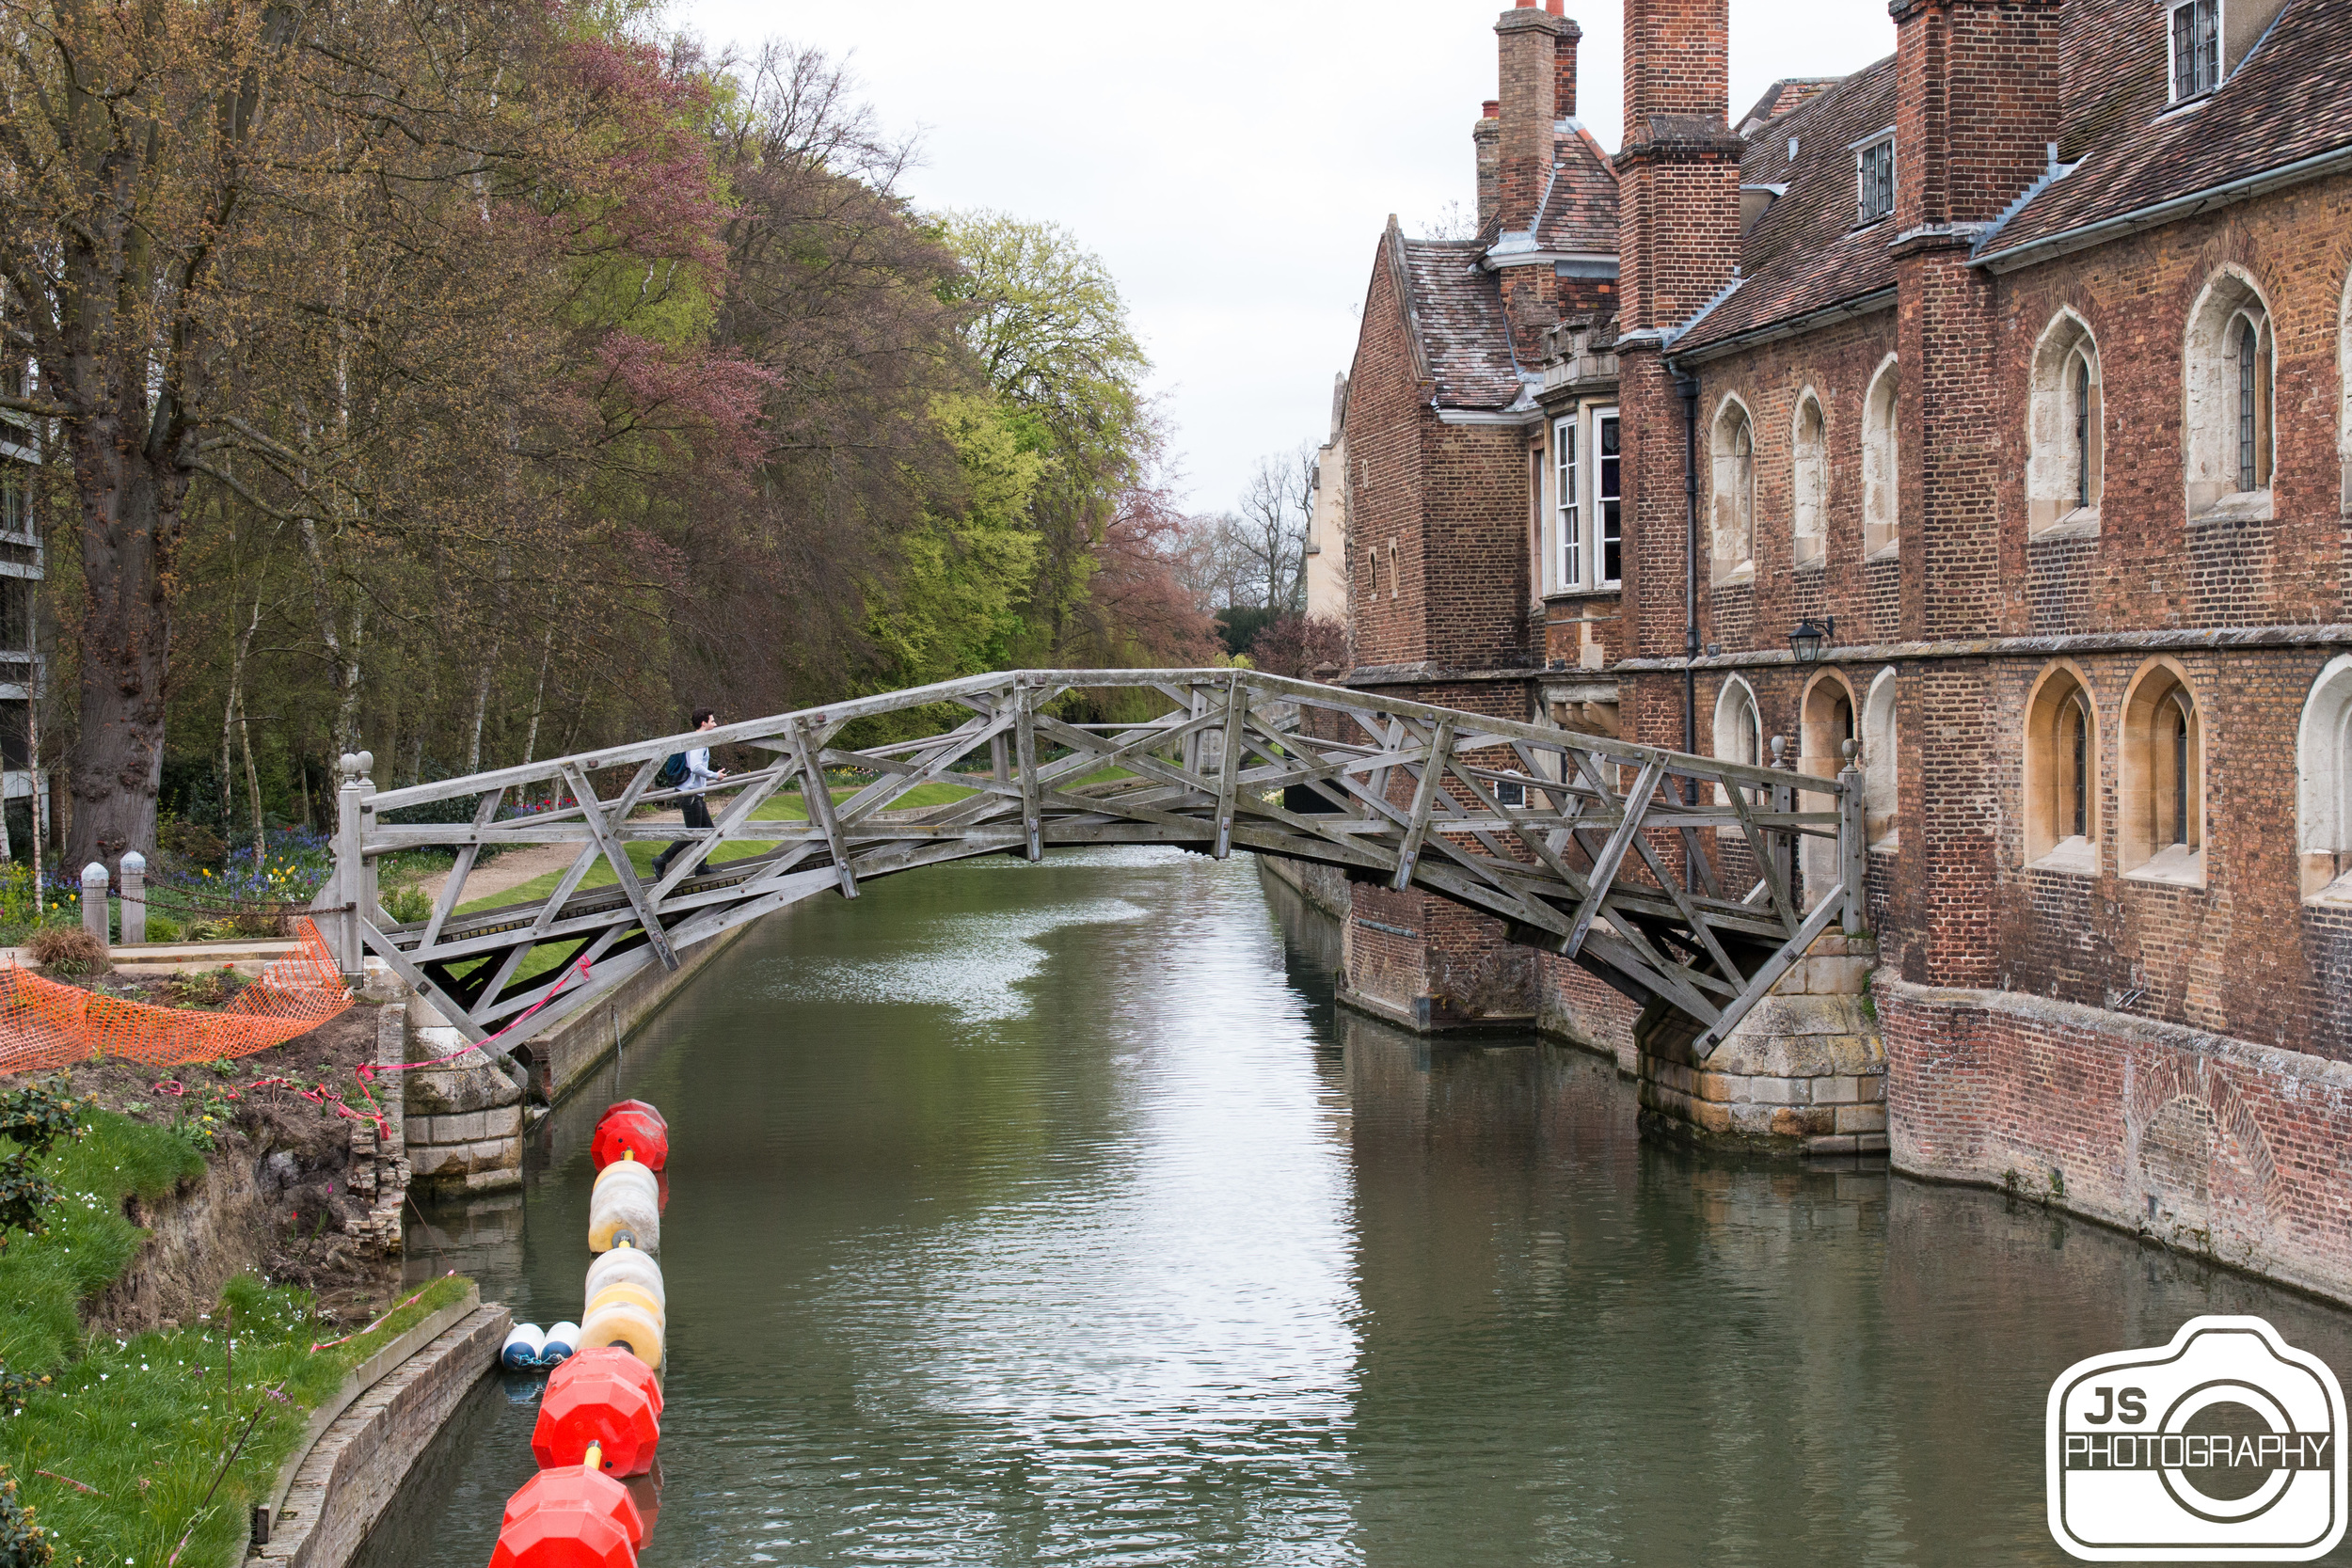 The famous mathematical bridge. I t is composed entirely of straight timbers. The bridge connects the two parts of Queen's College